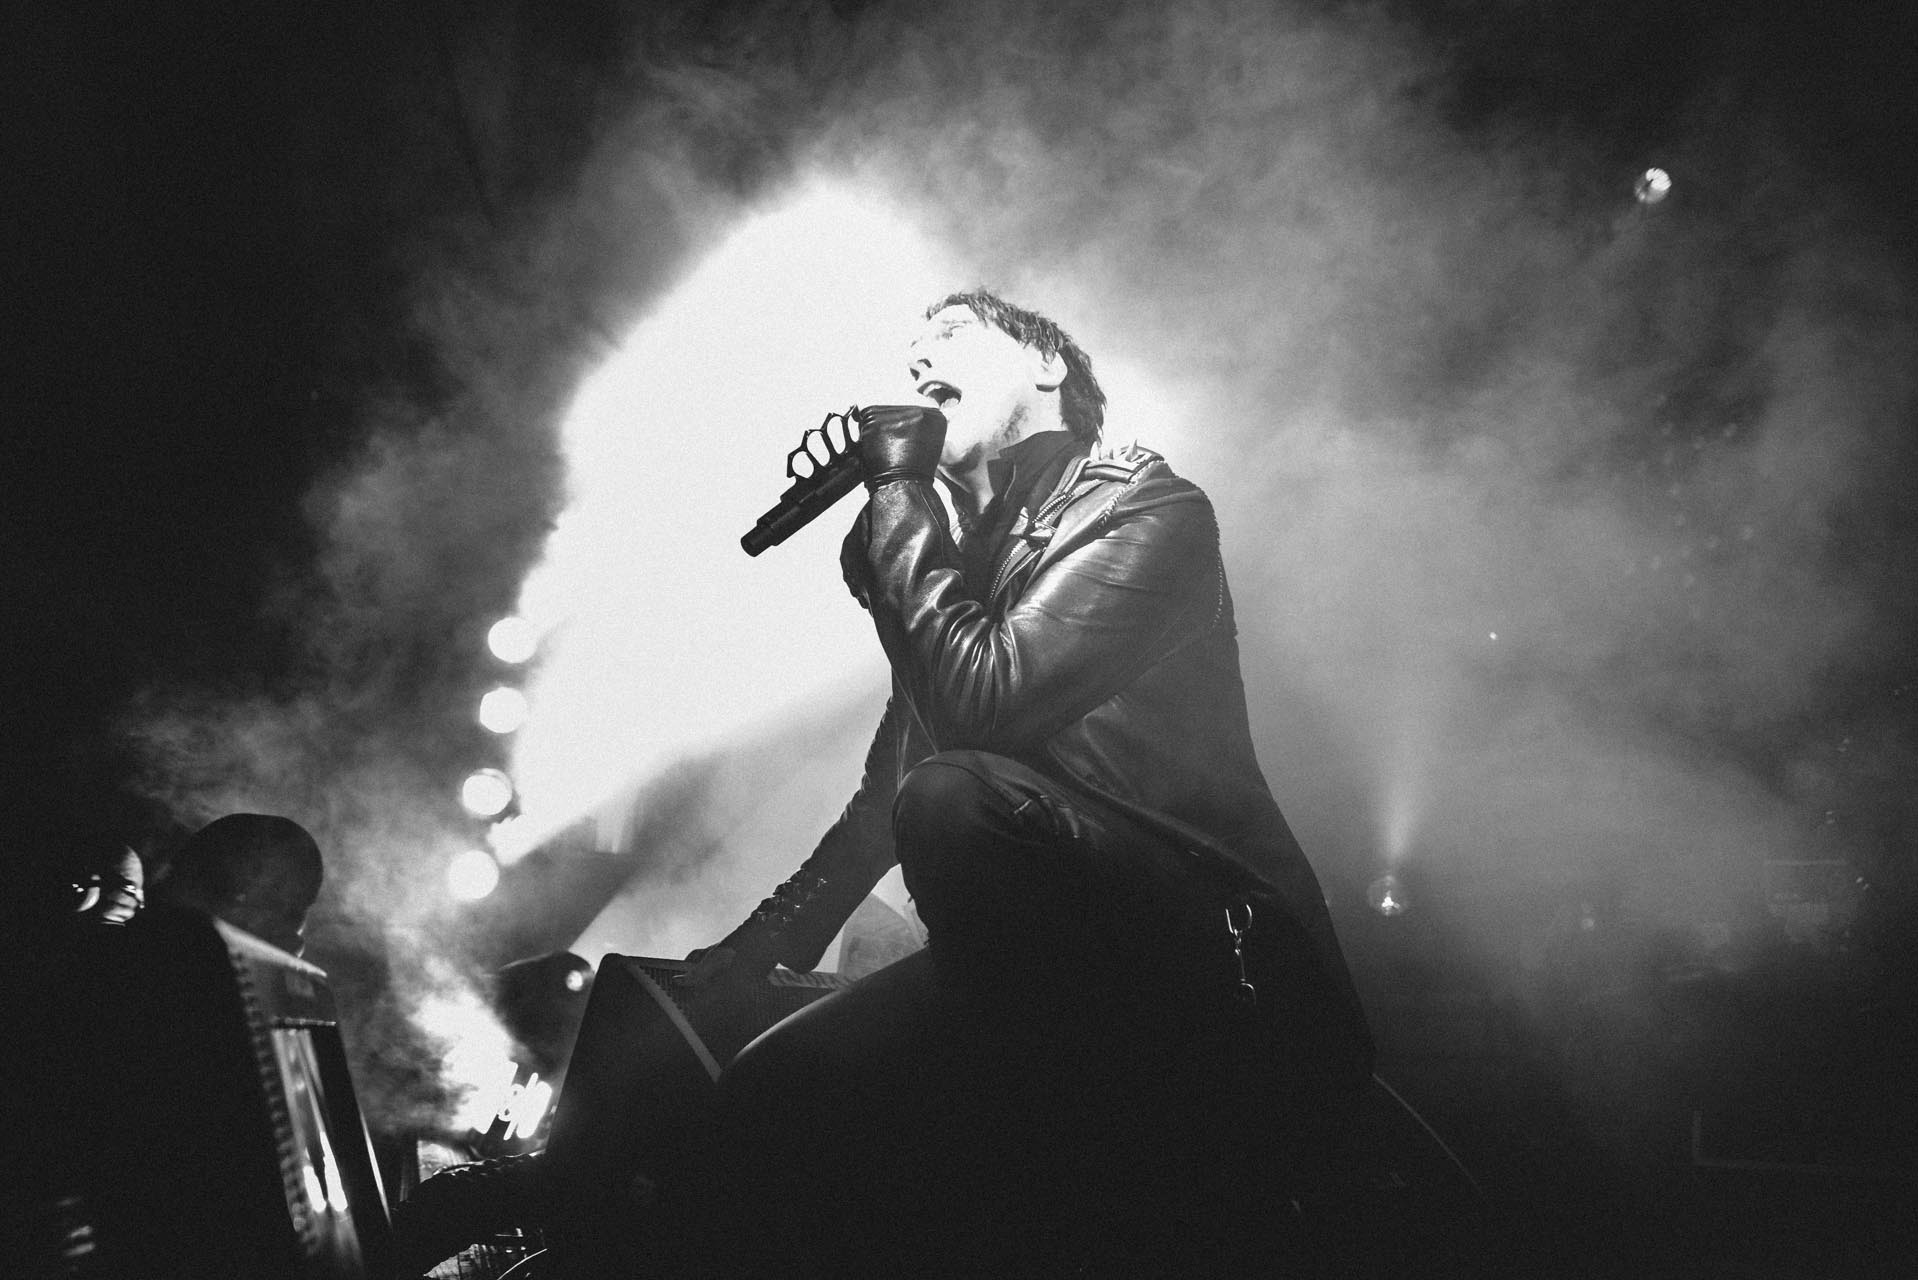 marilyn_manson_live_egyptian_room_indianapolis_2013-17